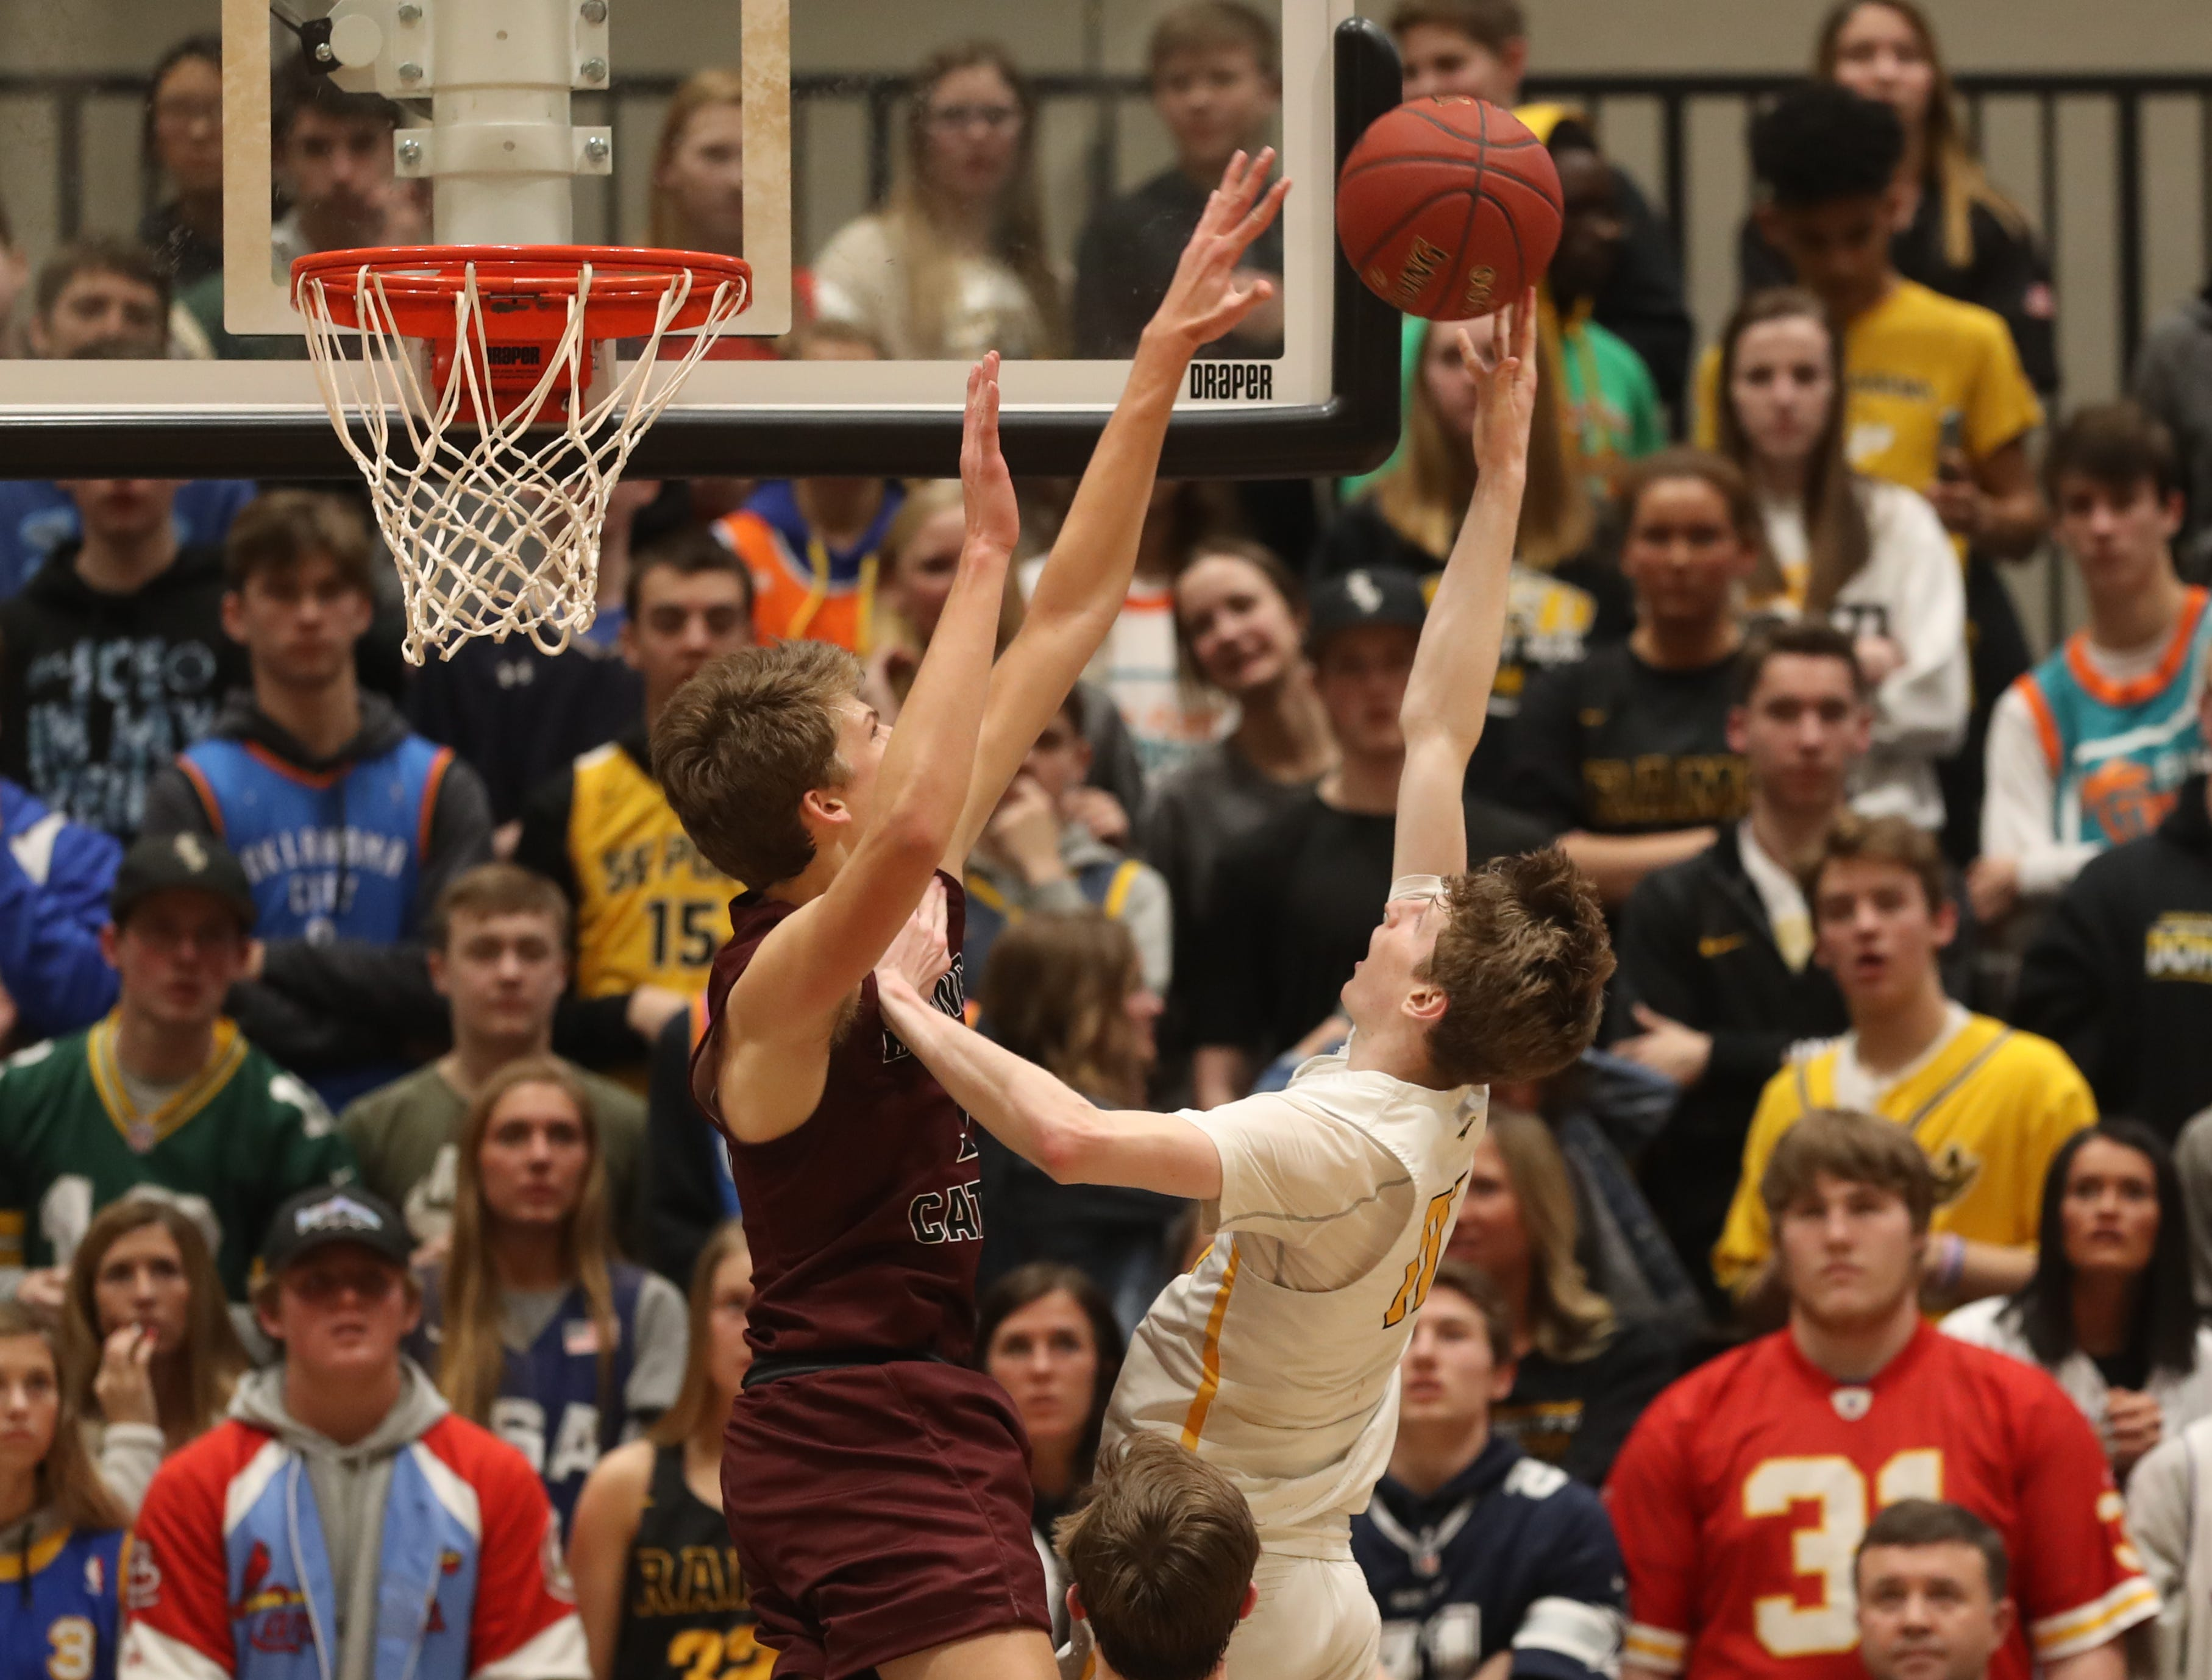 Dowling Catholic's Ryan Riggs (21) blocks the shot of Southeast Polk's Sam Glenn (11) during their game at Johnston High School in Johnston, Iowa, on Tuesday, Feb. 26, 2019. Dowling won the game 44-40 to advance to state.